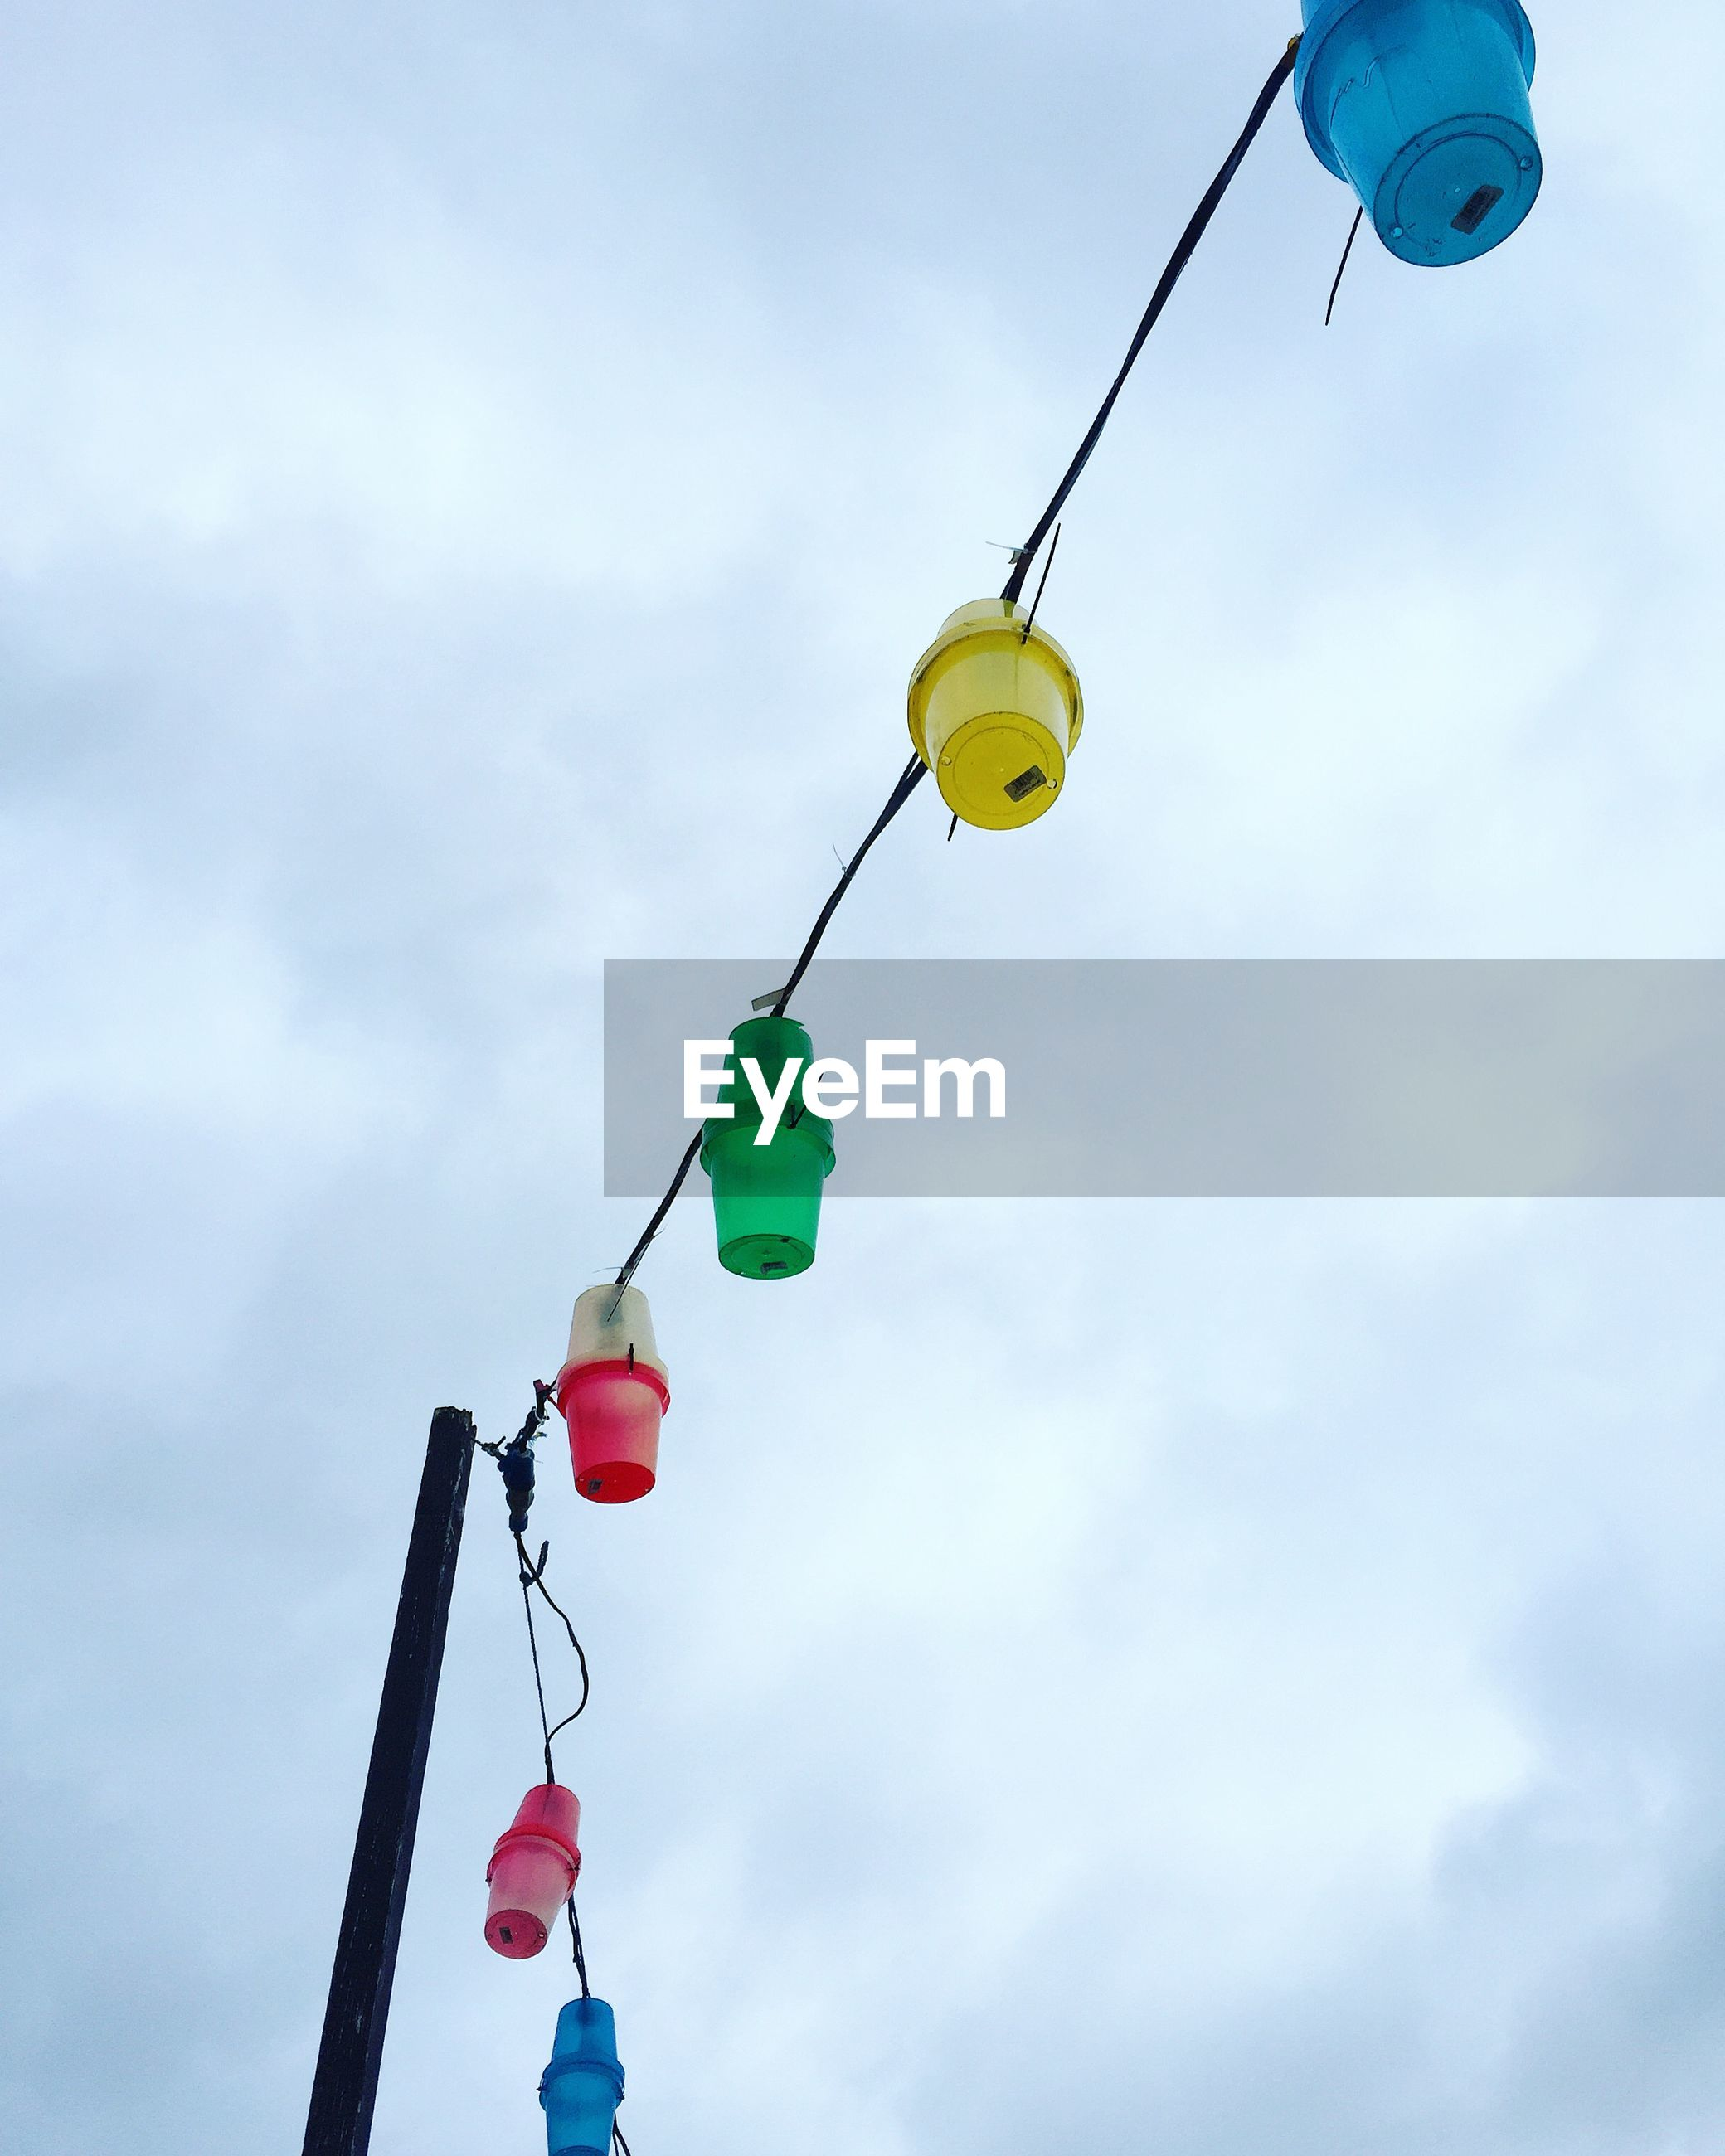 Low angle view of colorful lanterns against cloudy sky